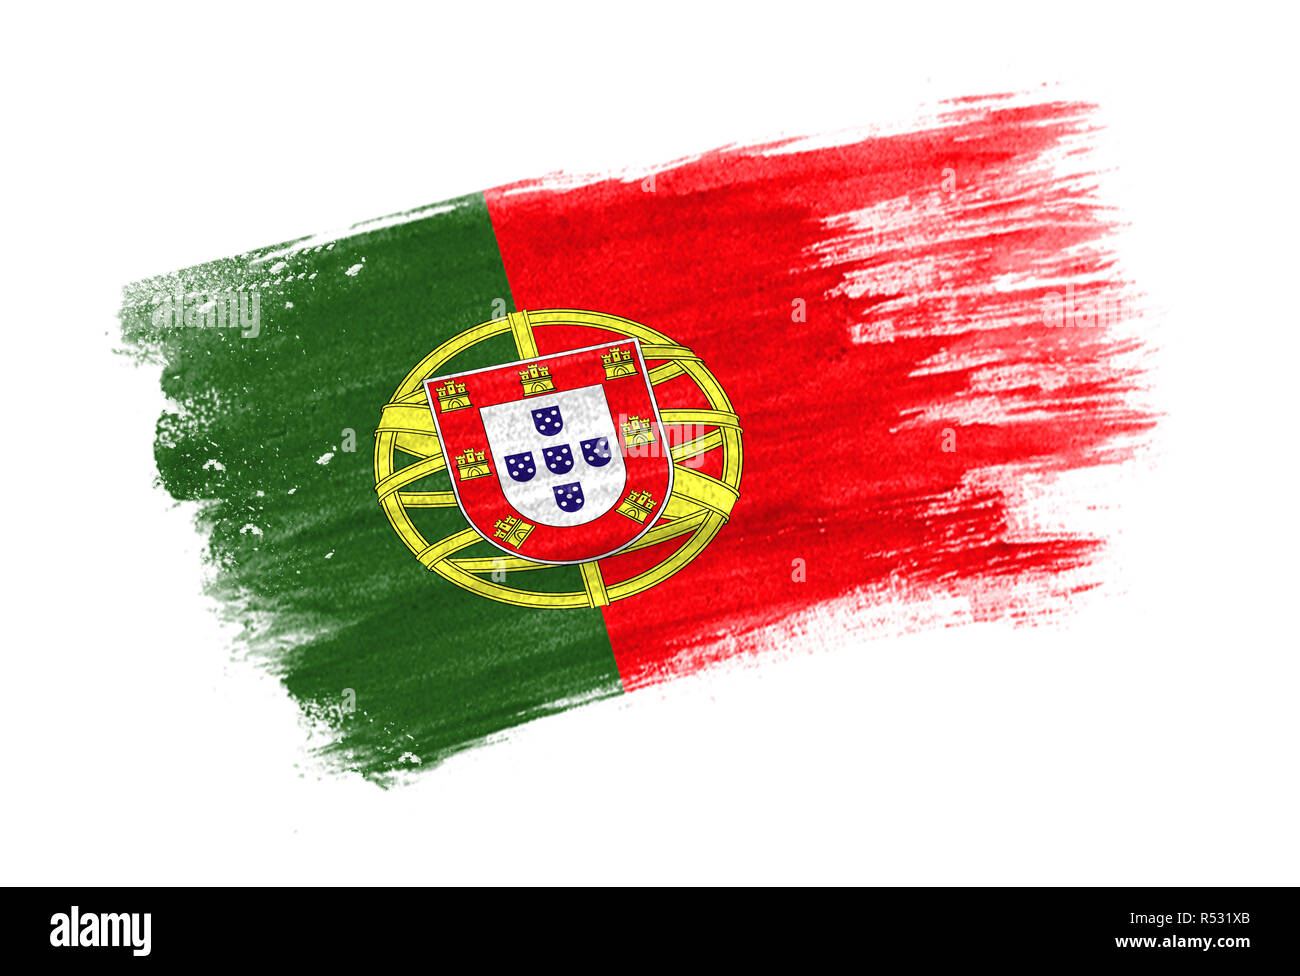 brush painted flag Portugal. Hand drawn style flag of Portugal Stock Photo  - Alamy